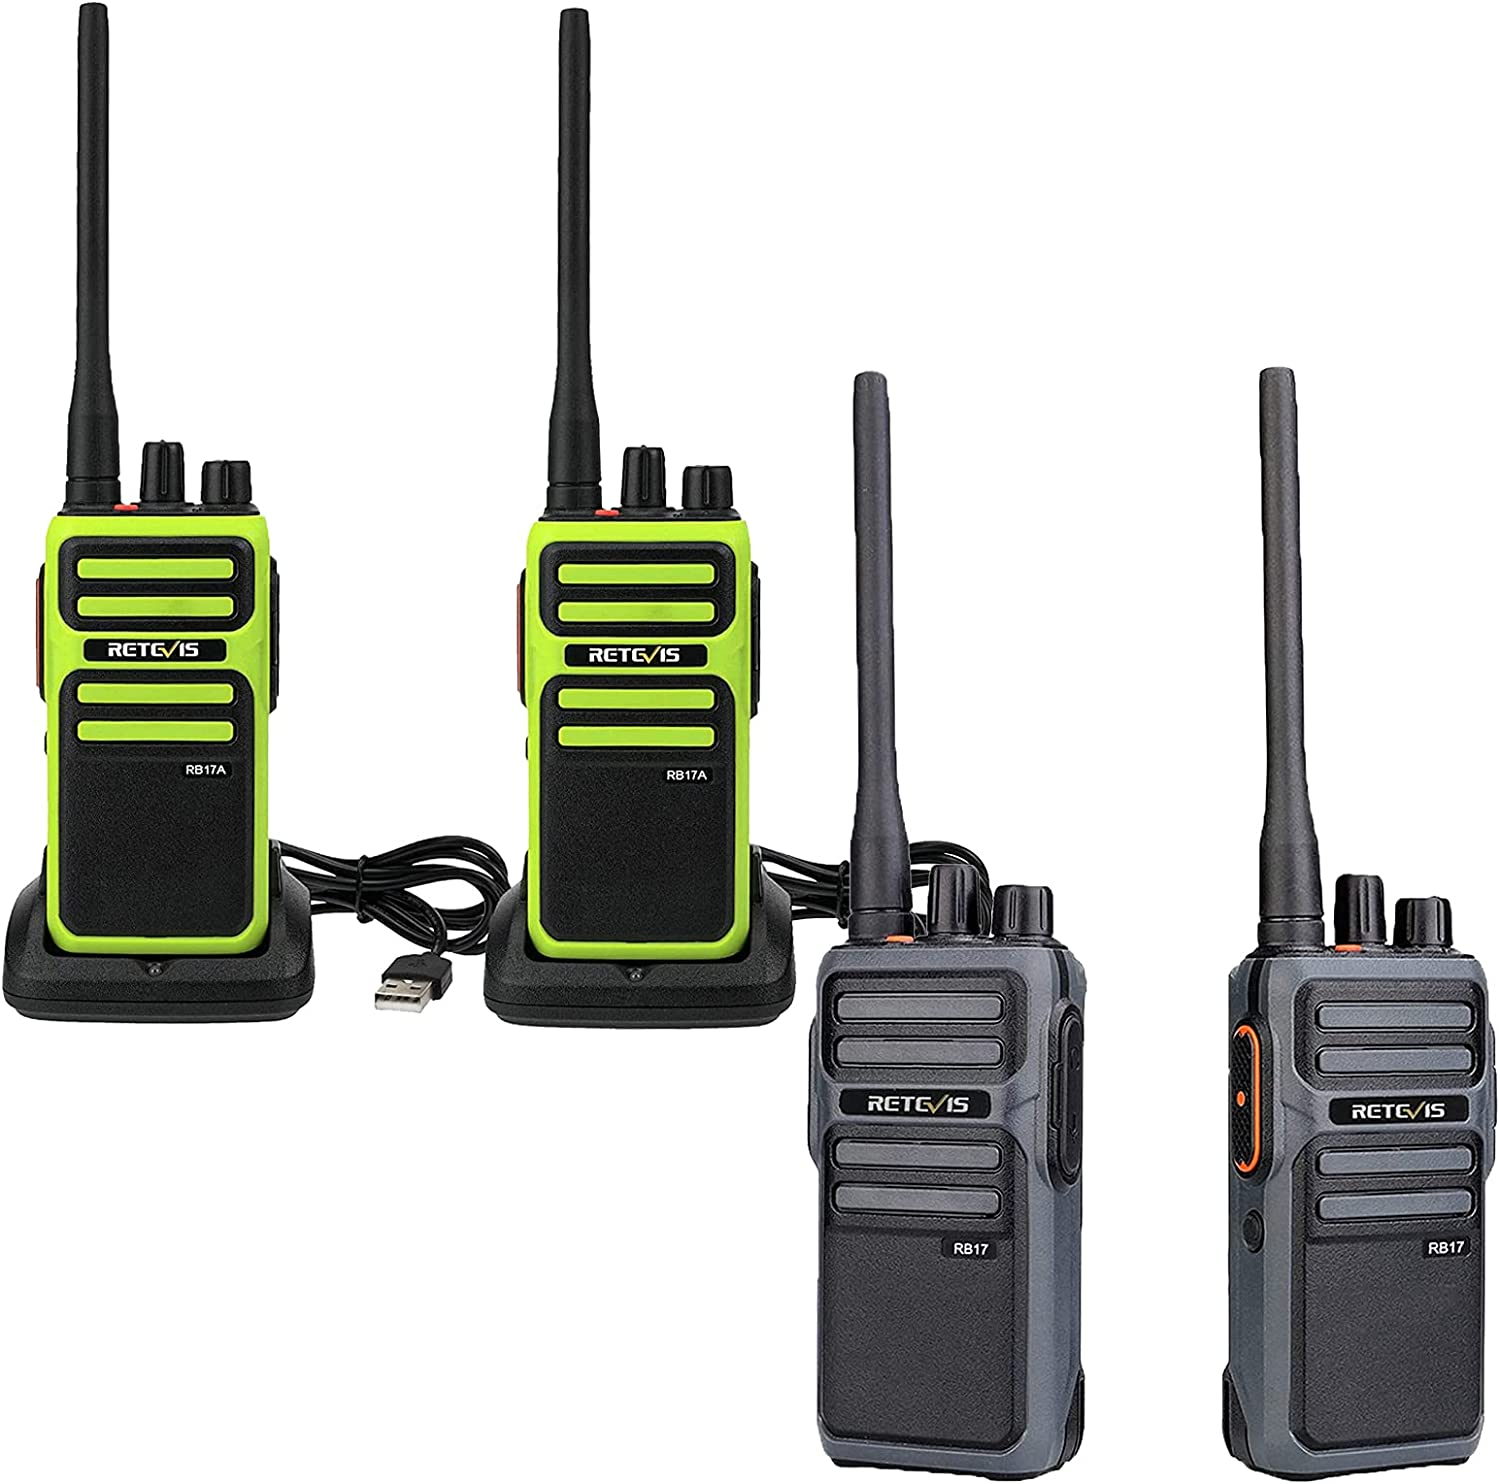 Sales for sale Retevis RB17A Walkie Talkies 2 Pack Way RB17 Limited Special Price Two Radio P and